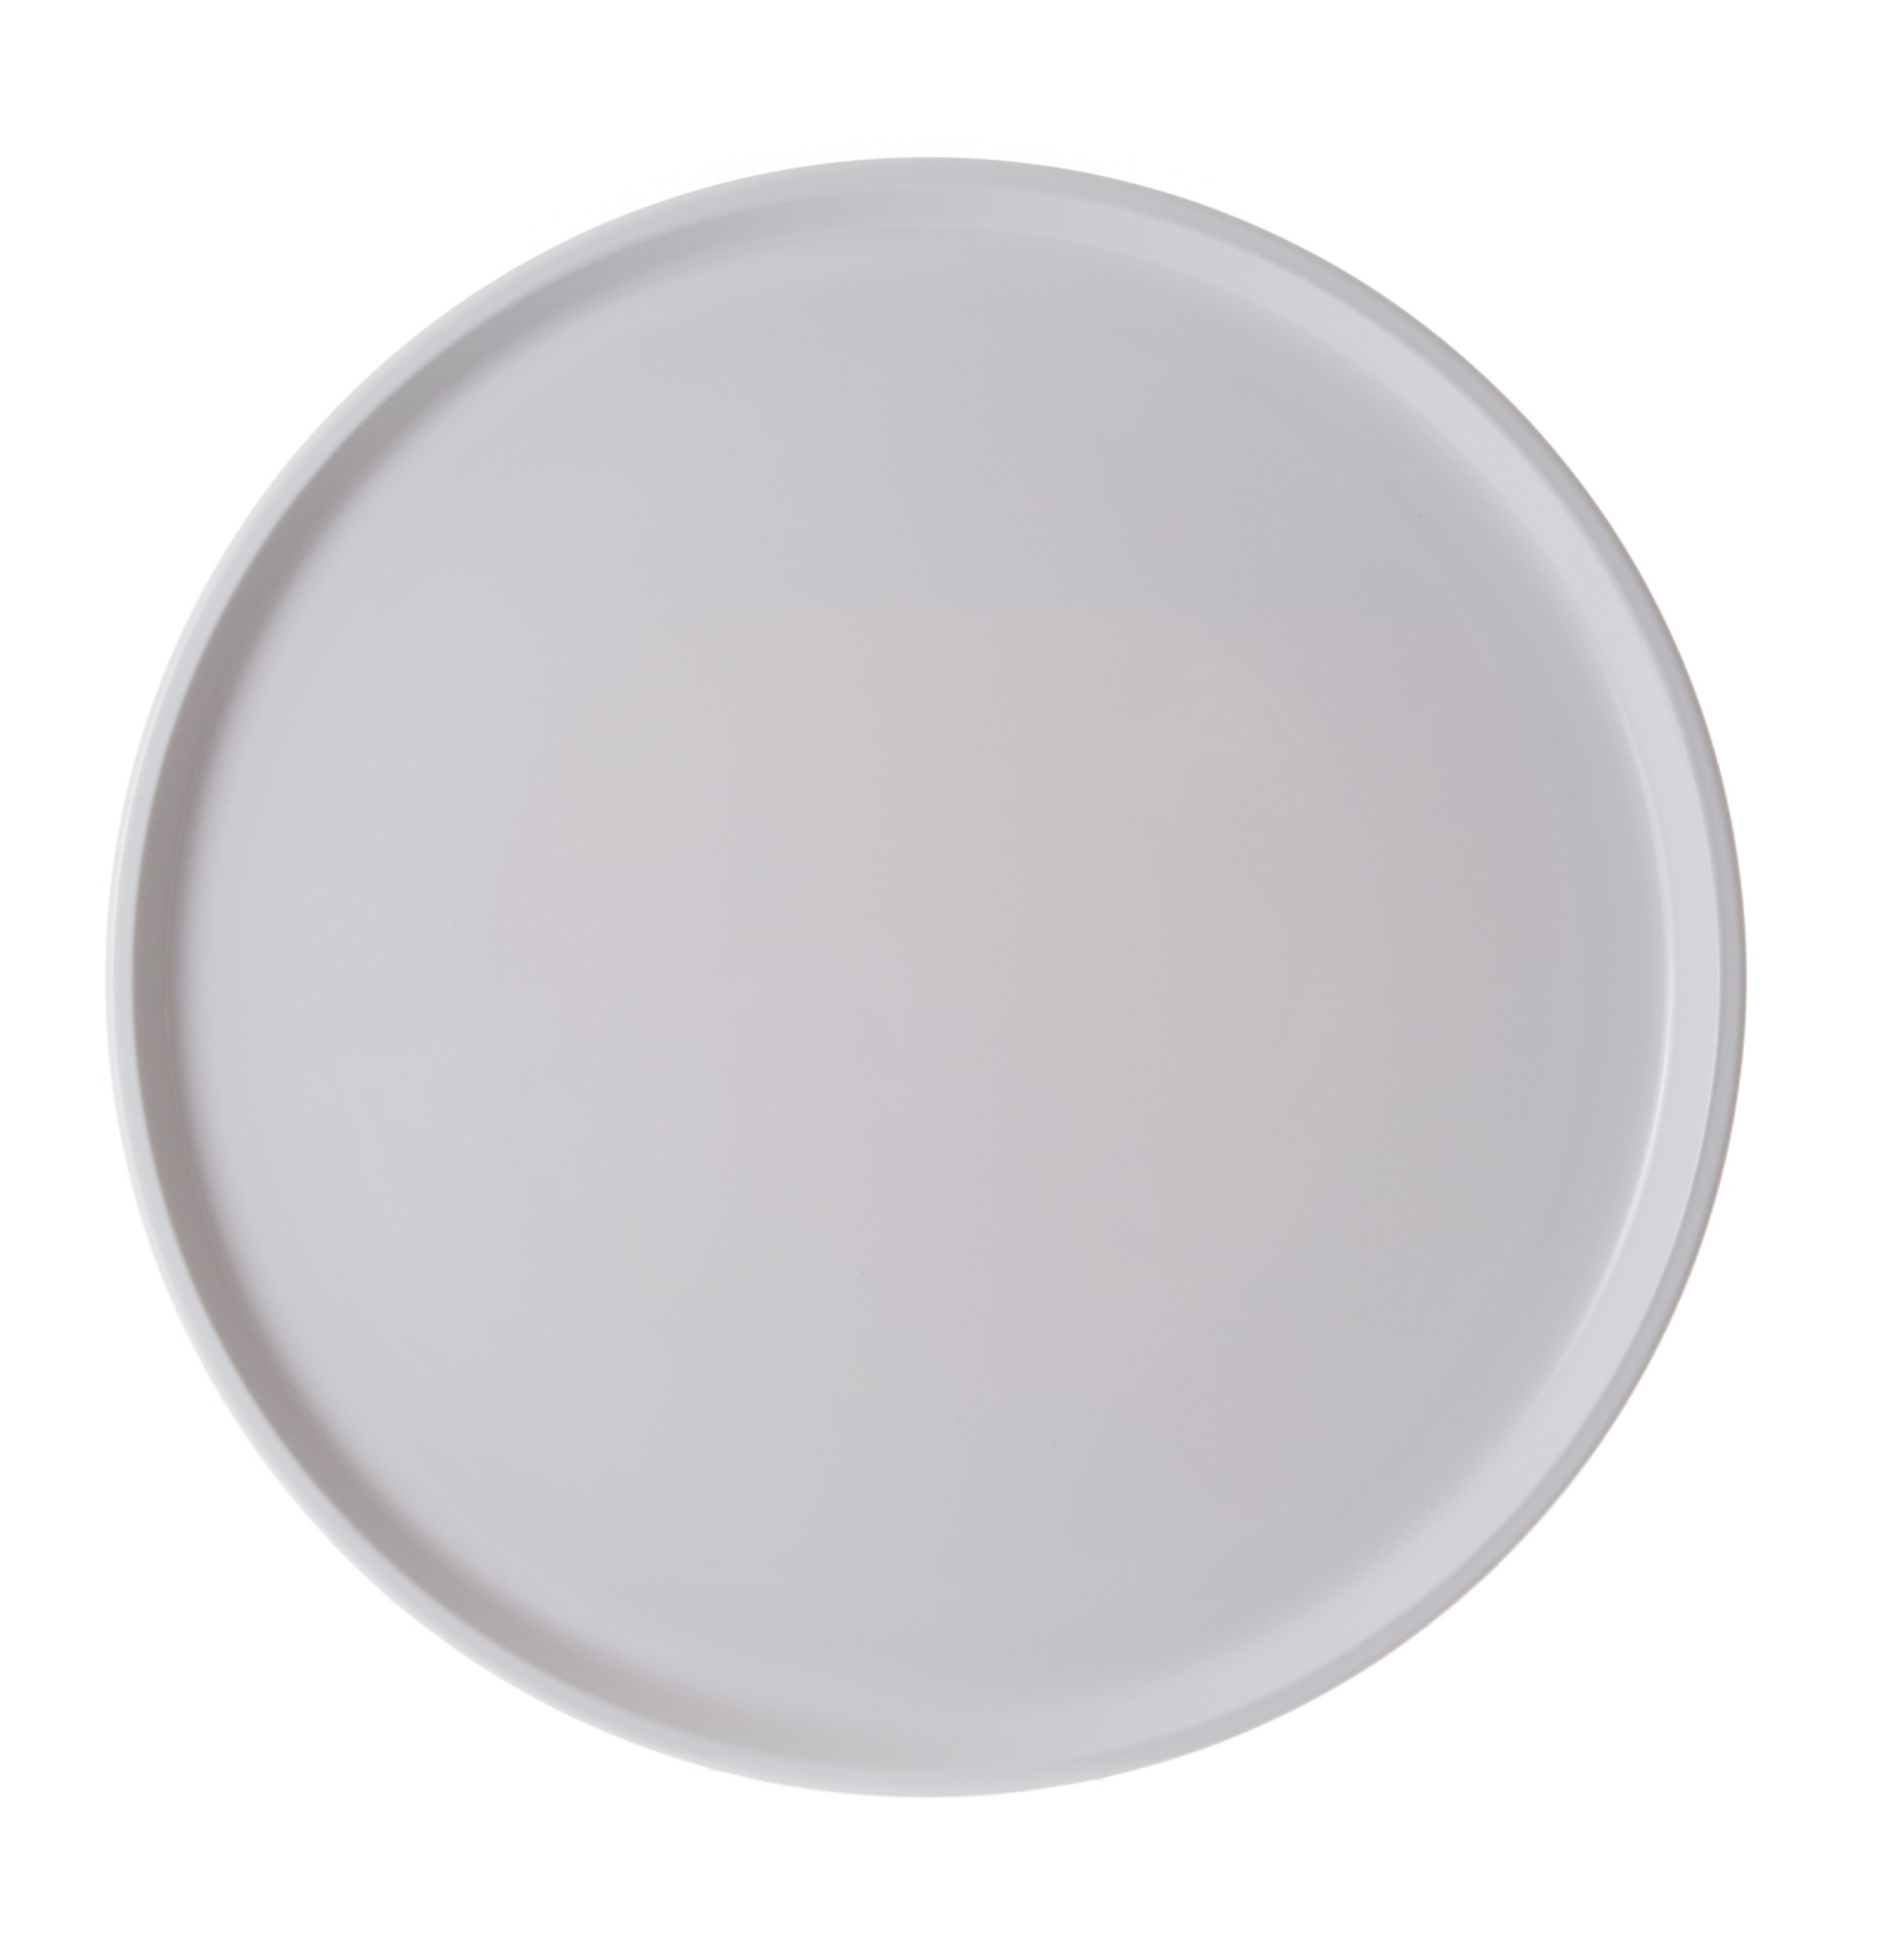 G.E Ceramic Turntable Plate WB-49X10246 Replaces WB49X10052